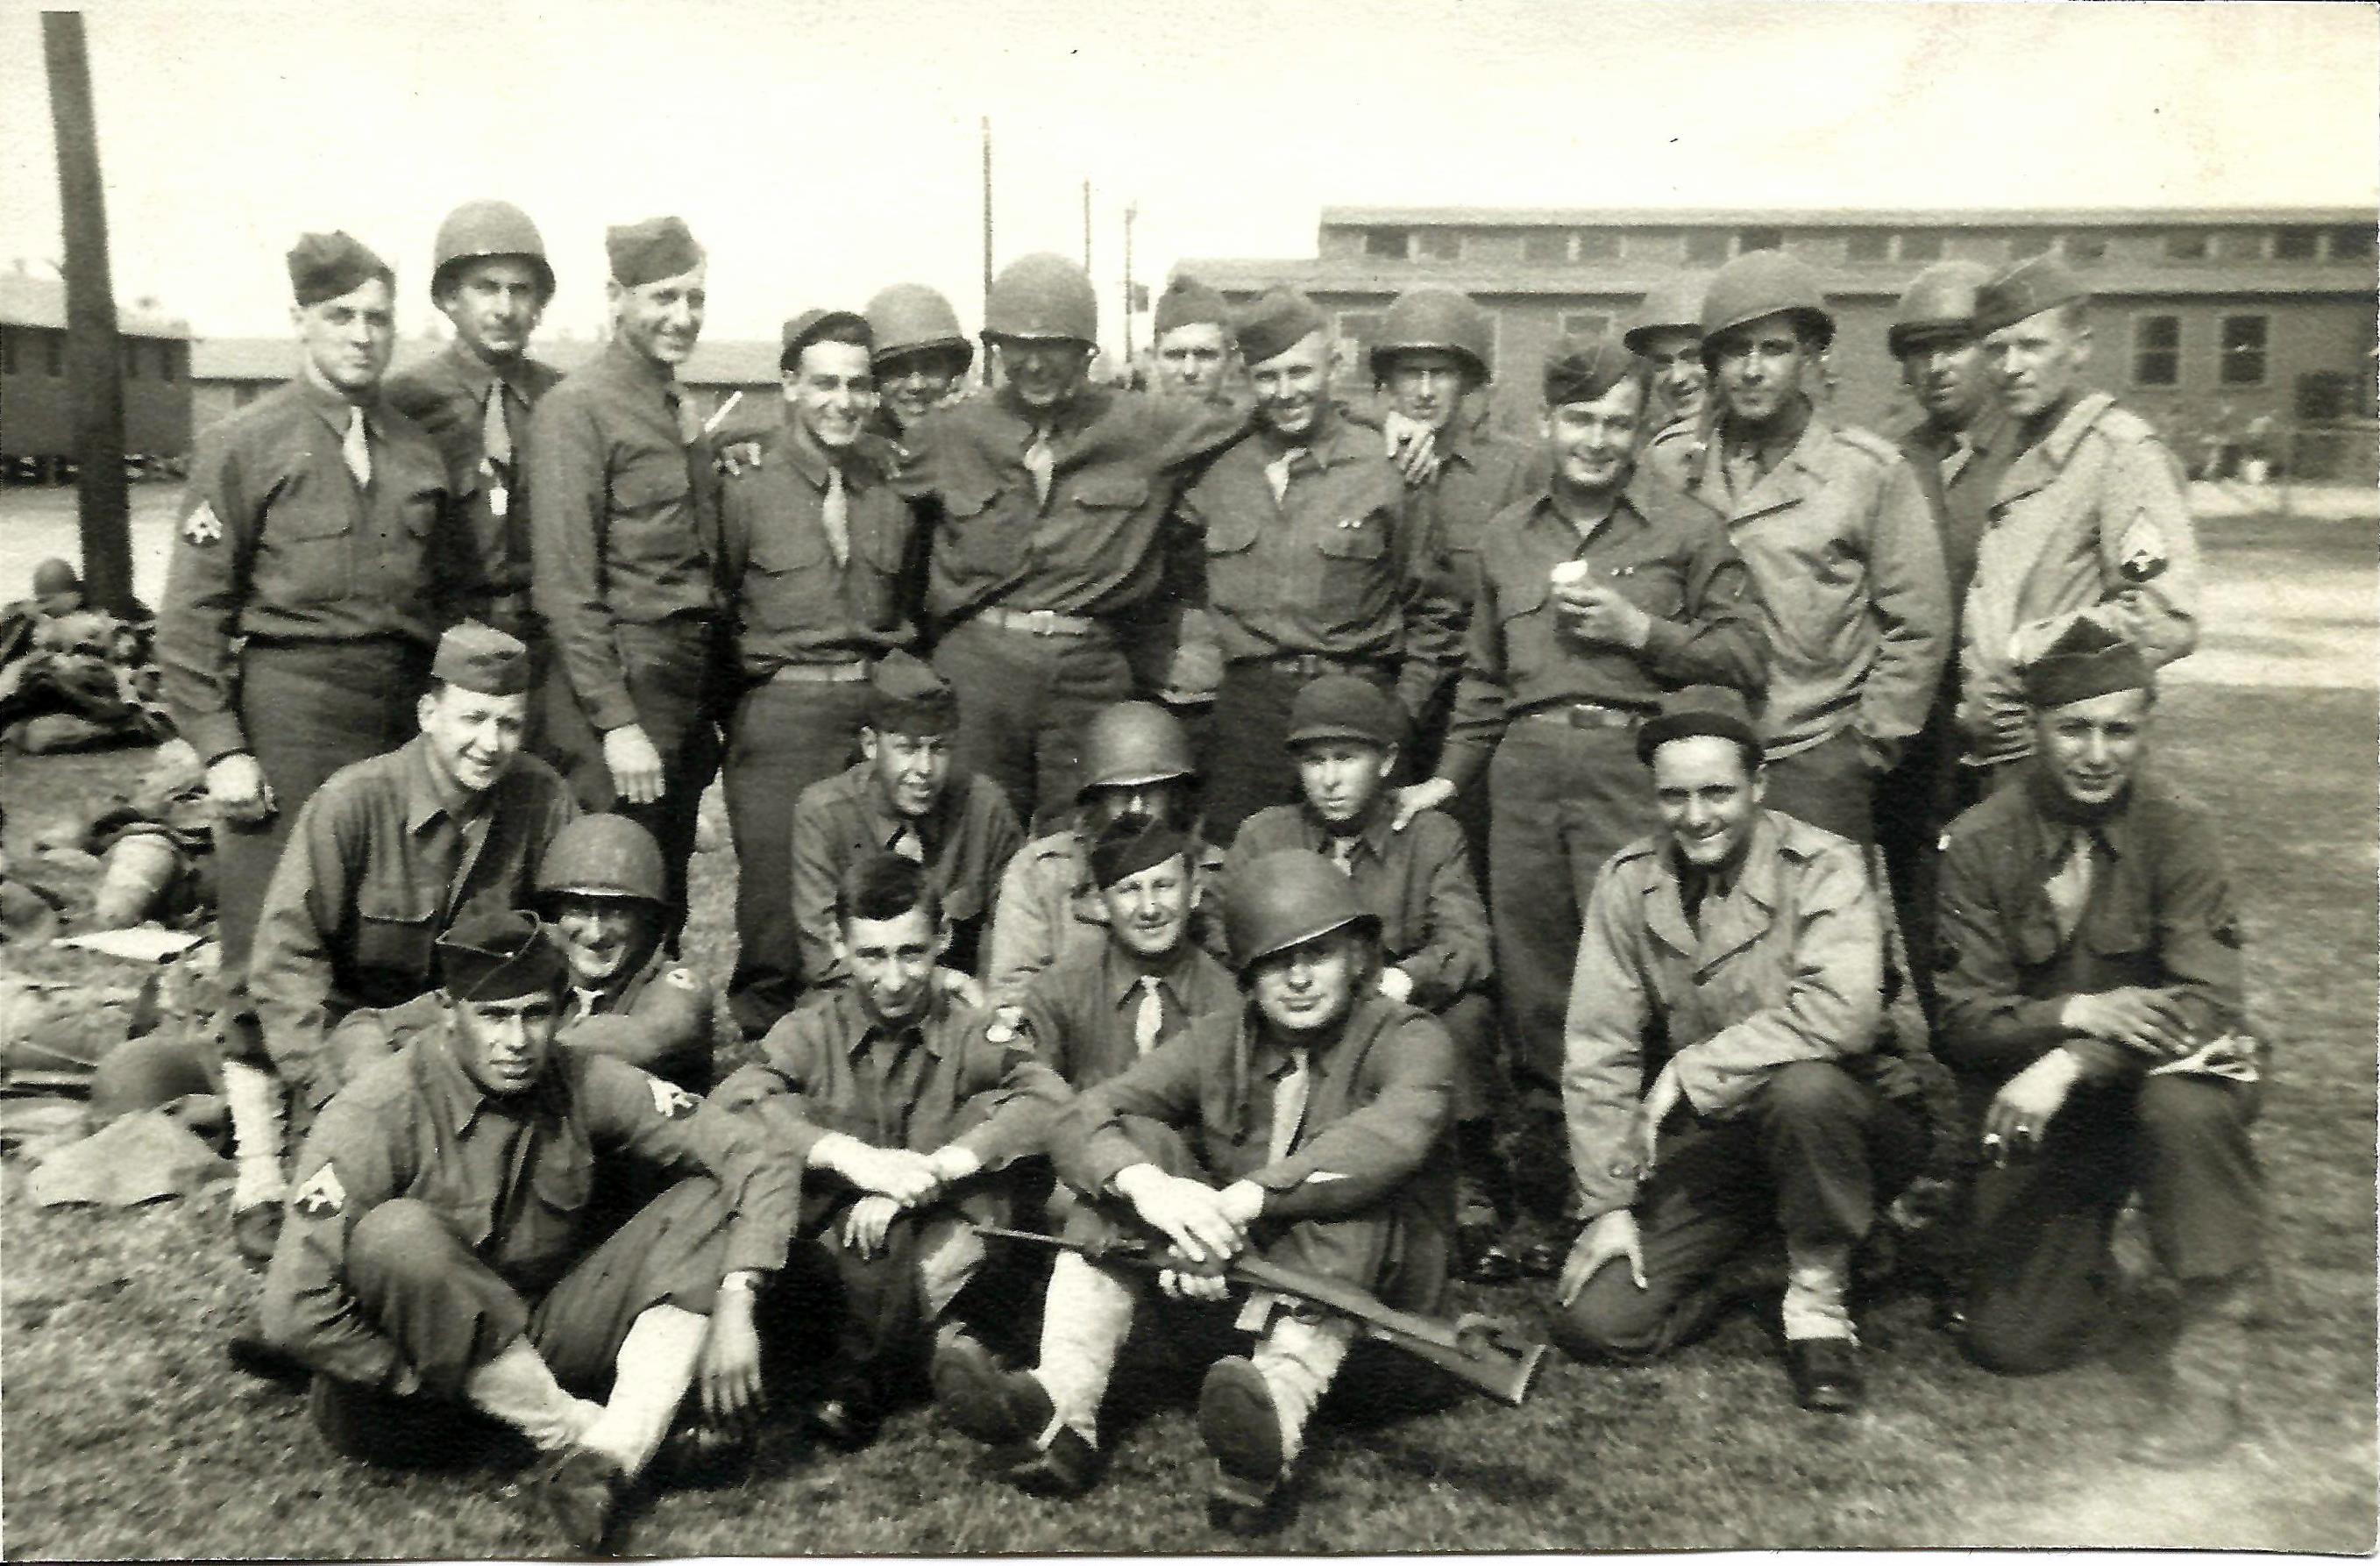 band of brothers michael van kerckhove my grandfather frank van kerckhove kneeling 2nd from right his